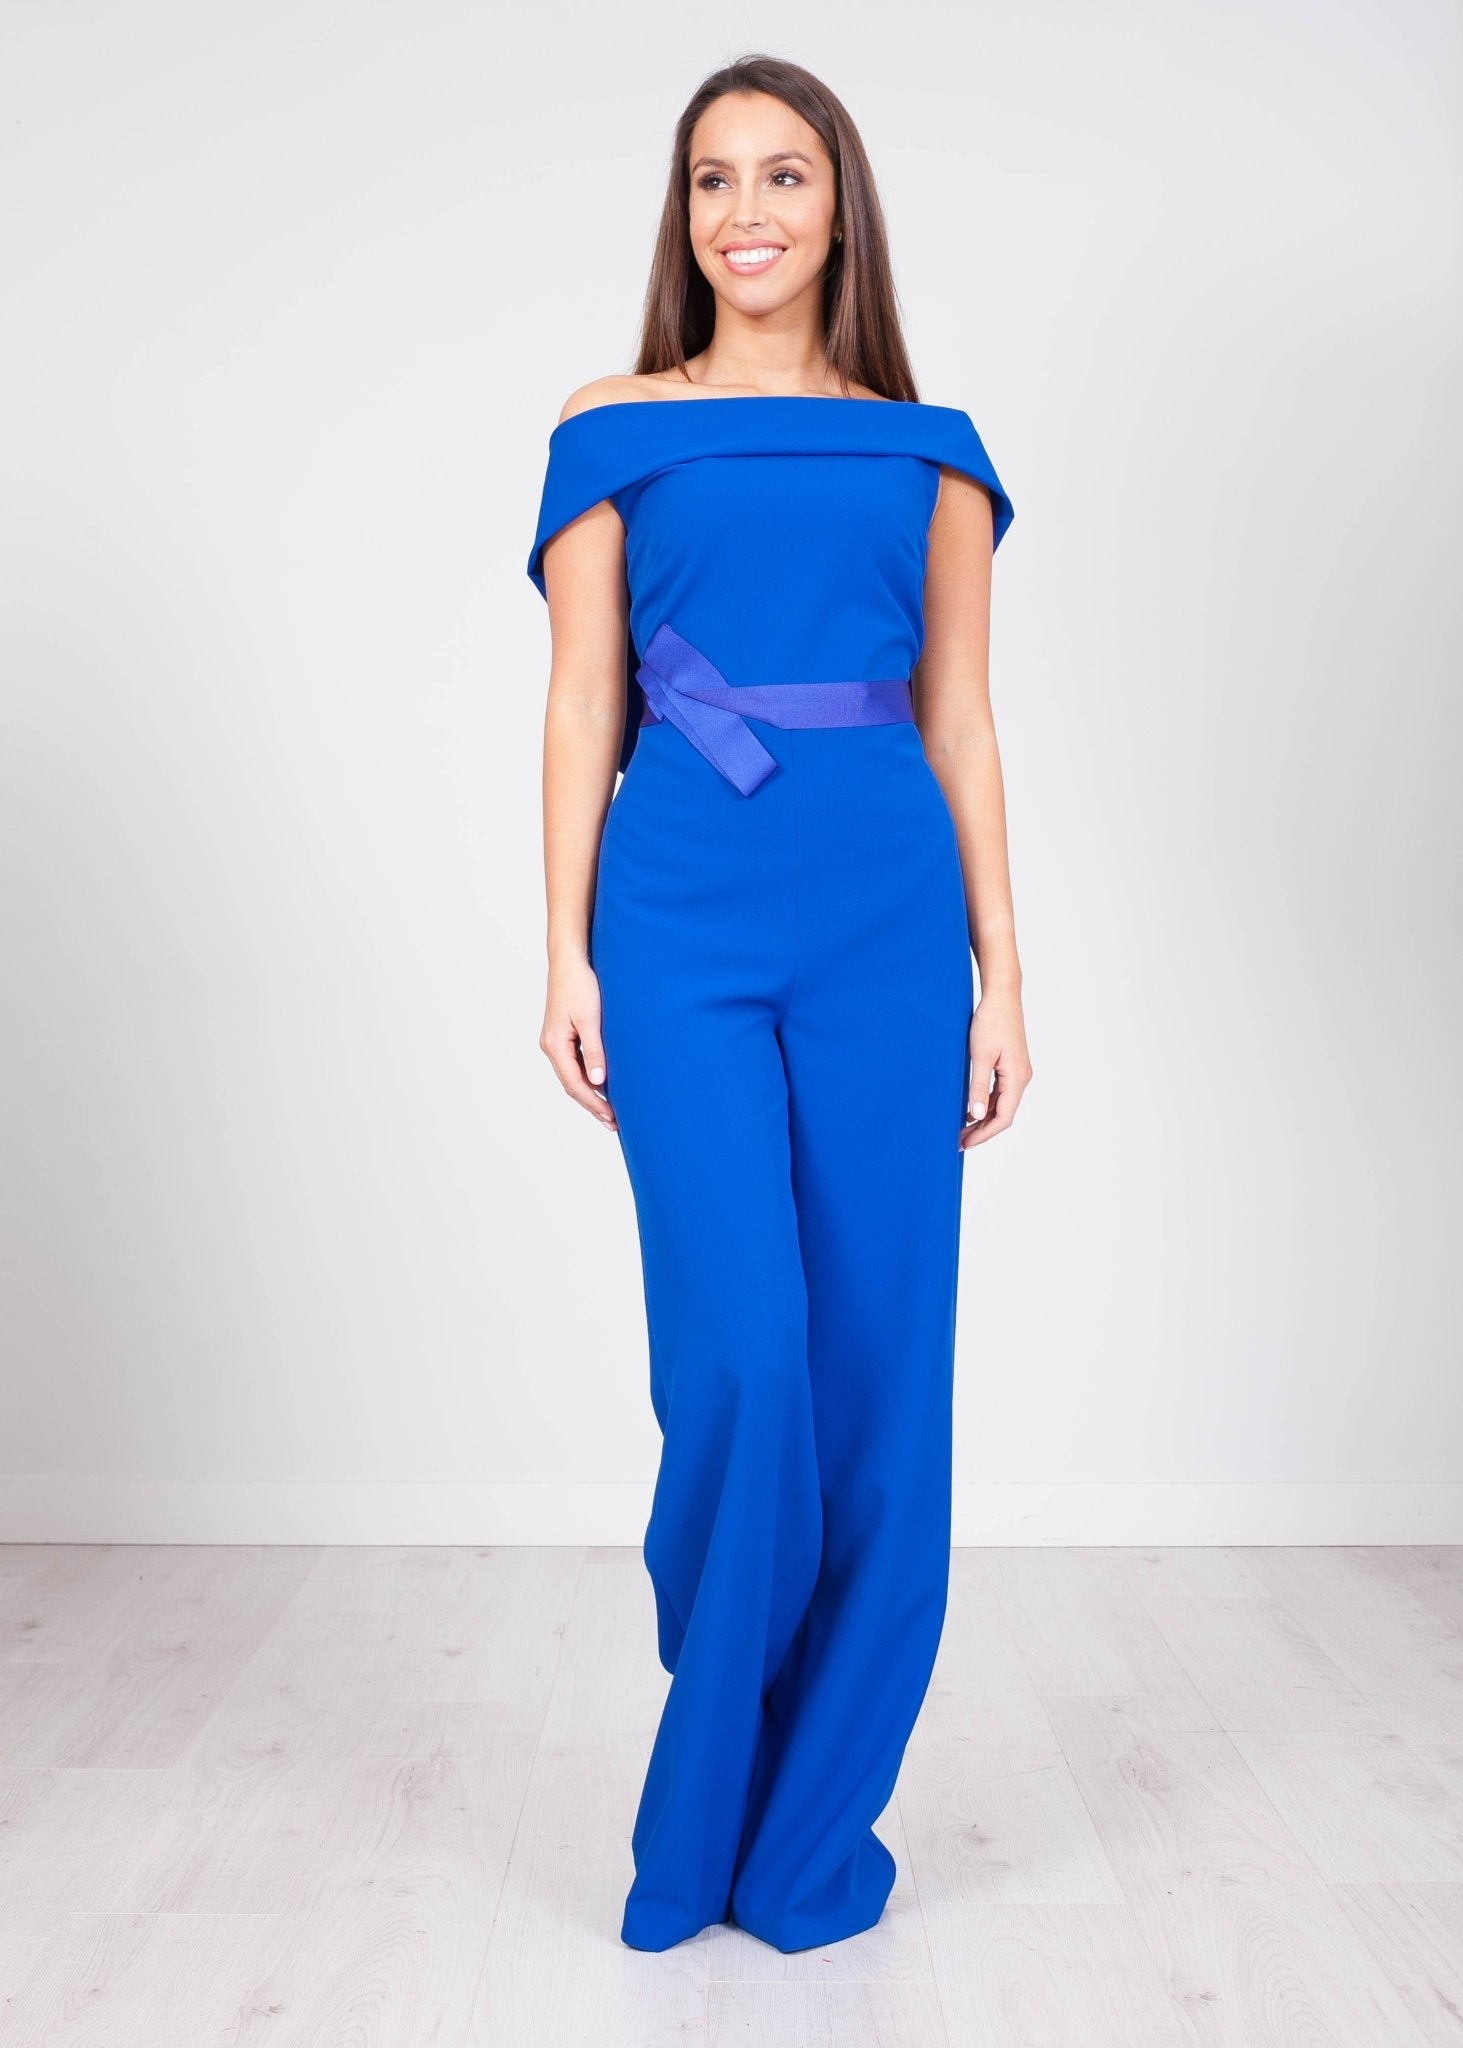 Carla Blue Jumpsuit - The Walk in Wardrobe